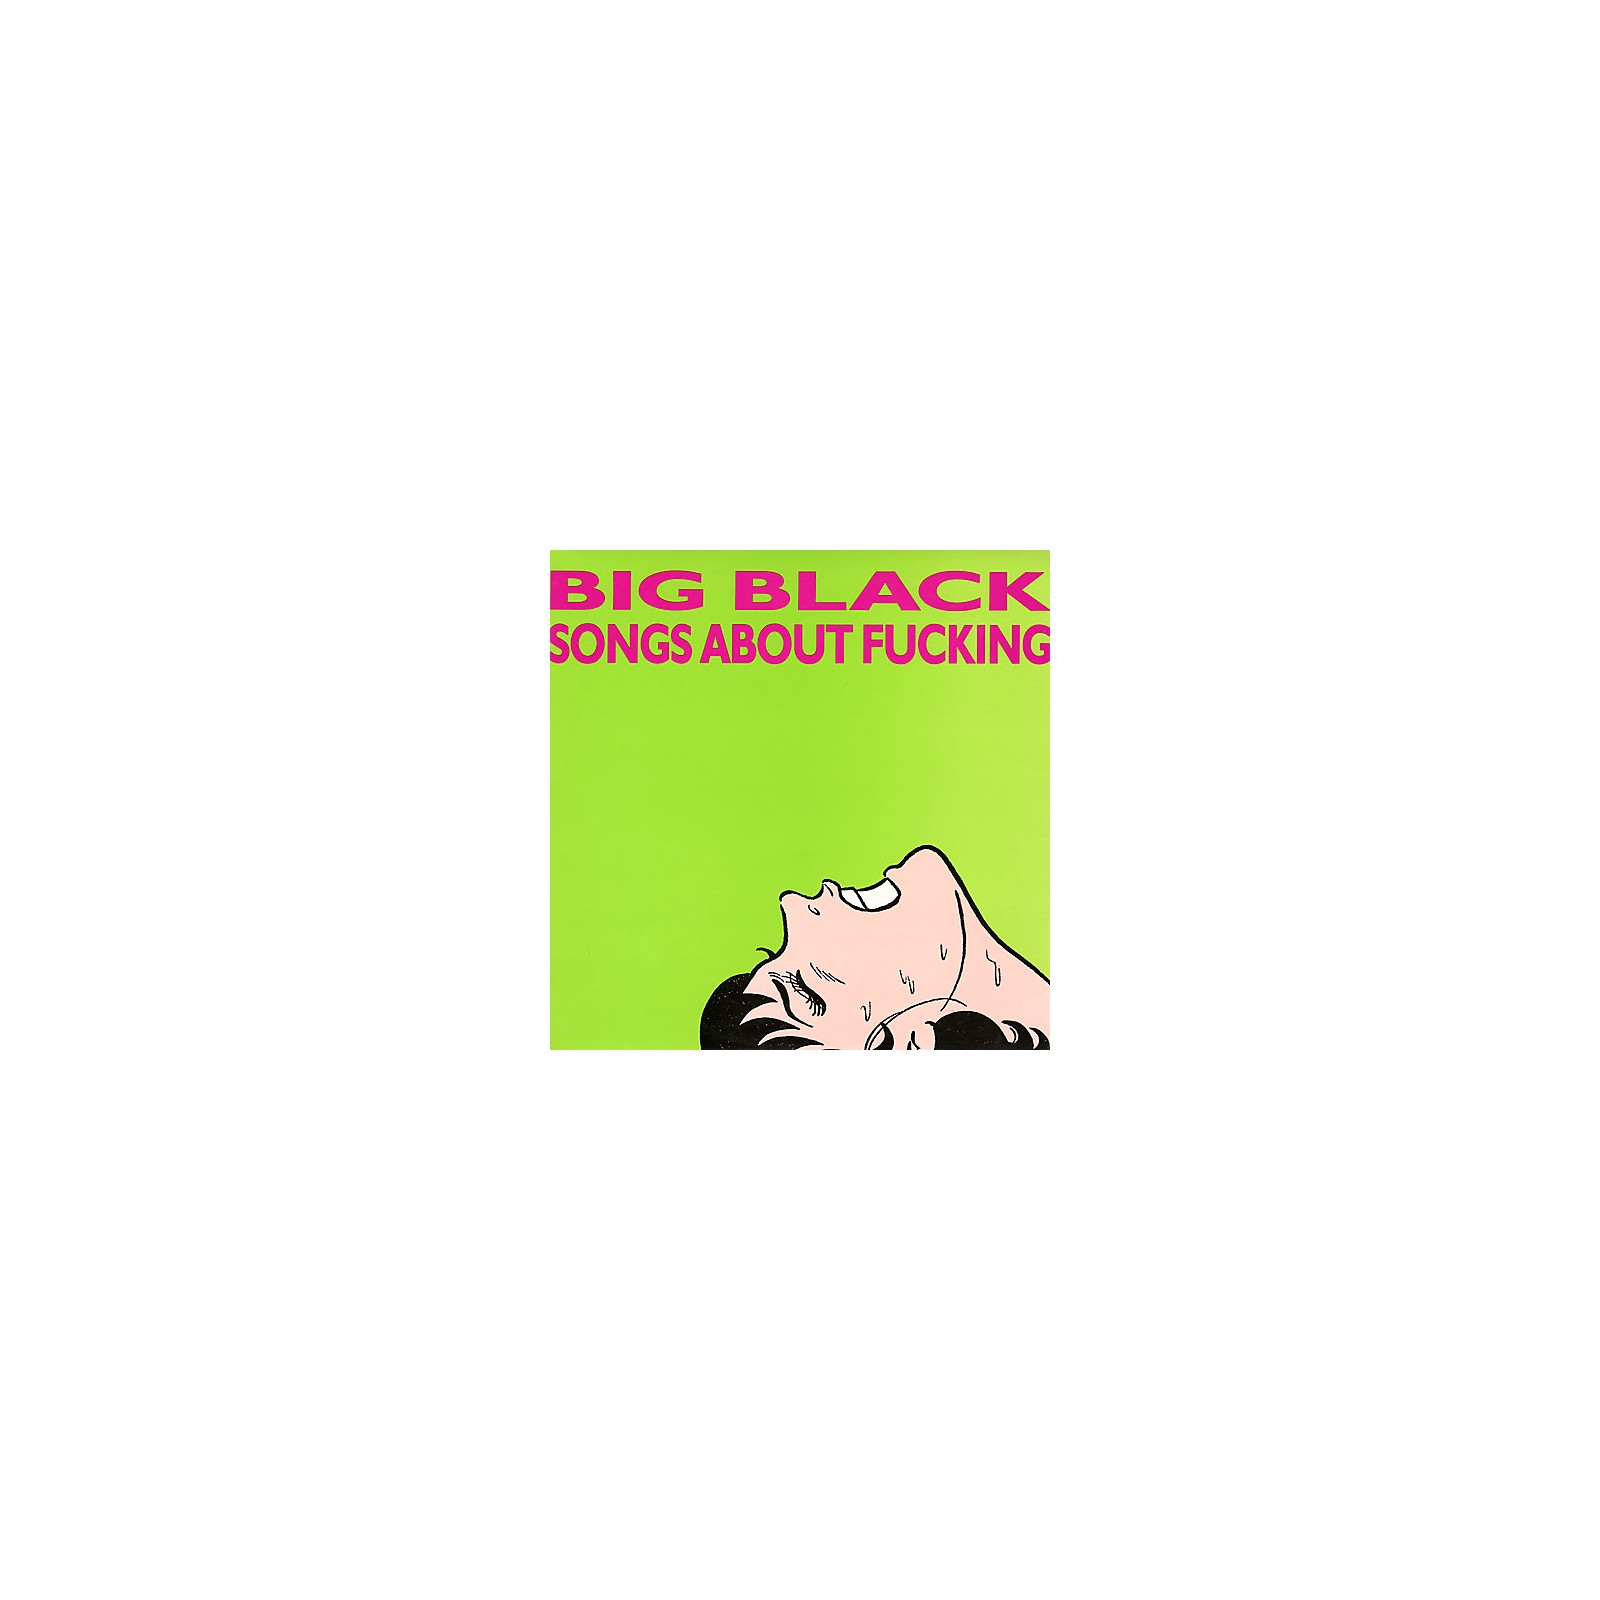 Alliance Big Black - Songs About Fucking